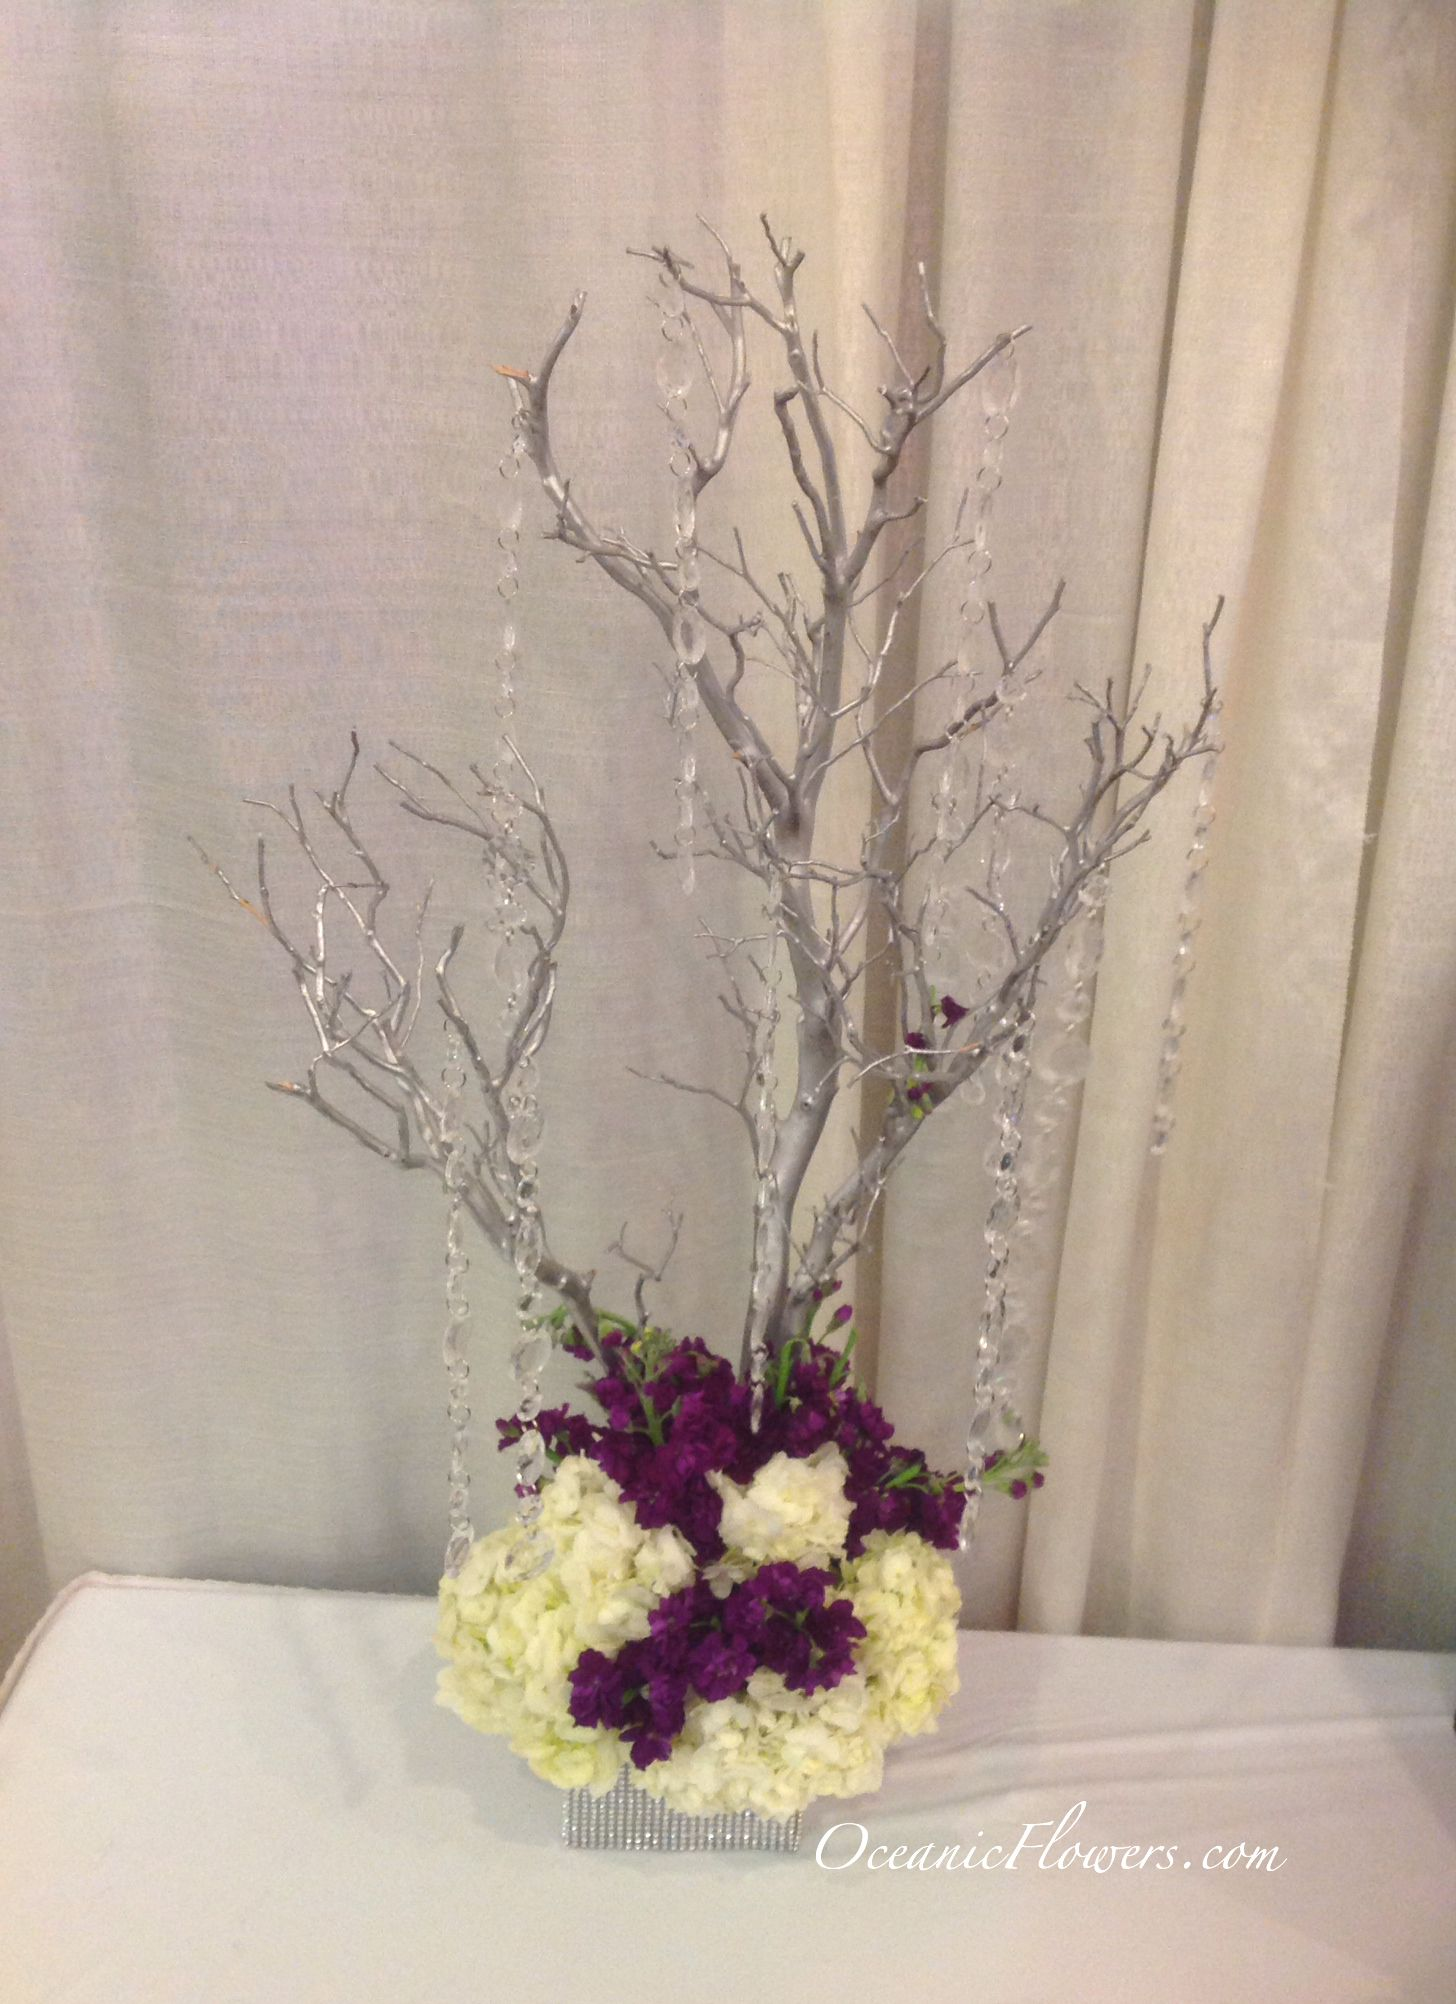 Purple and White Large Centerpiece, Manzanita Tree with Hanging Crystals